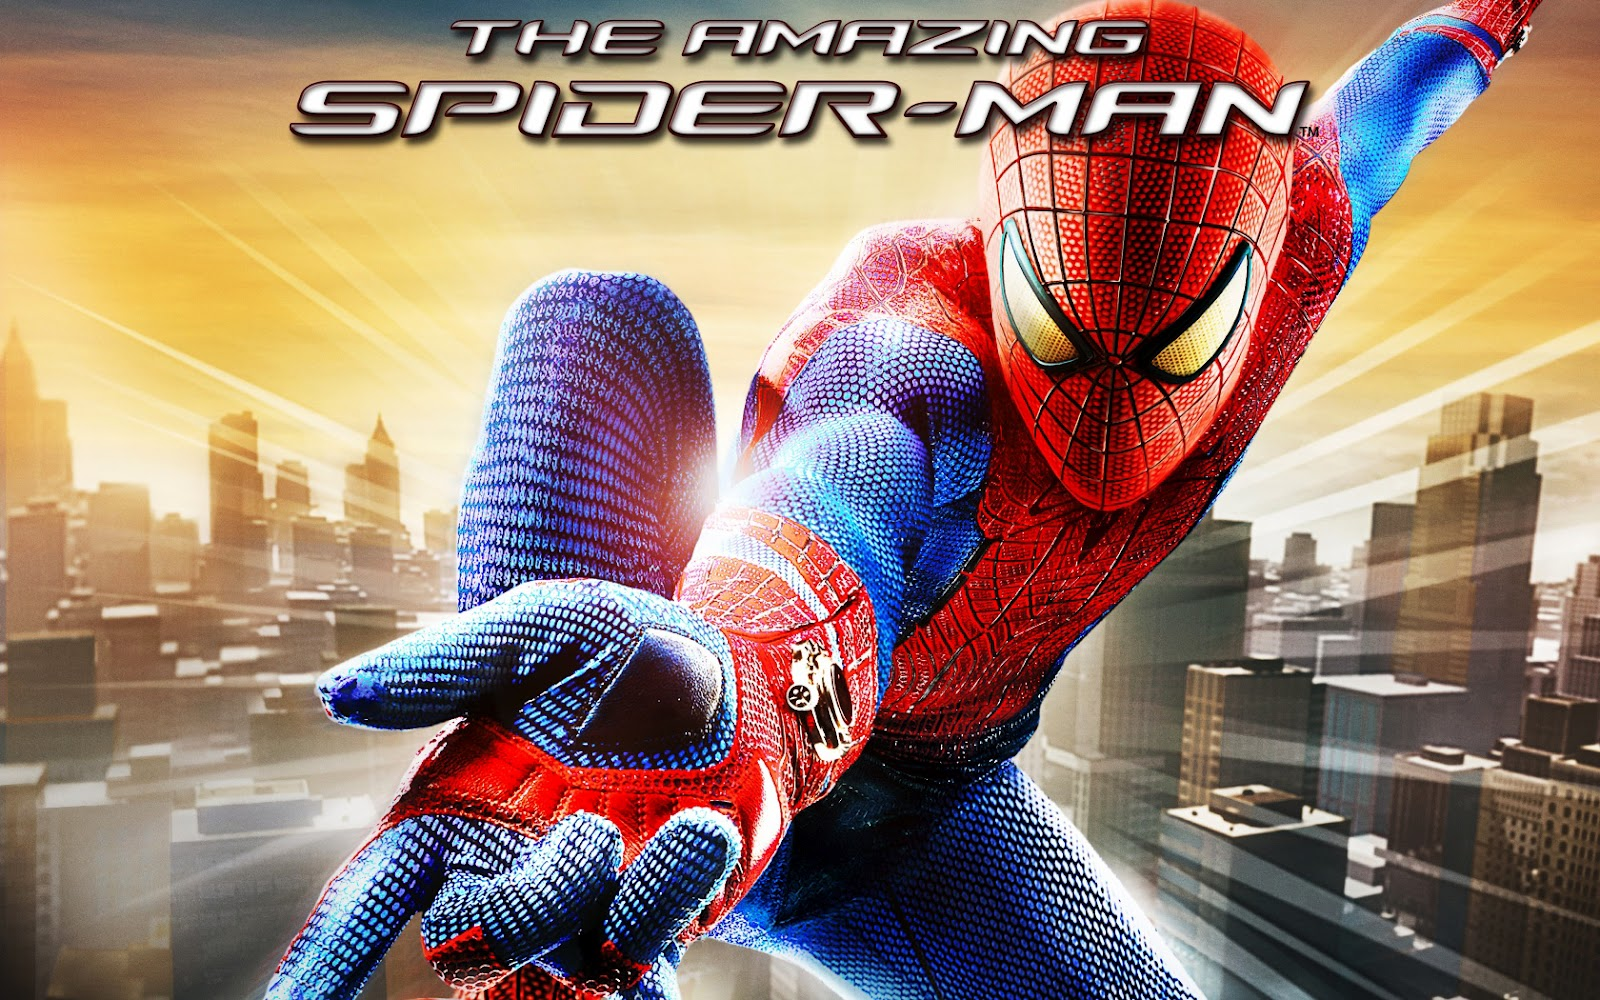 http://2.bp.blogspot.com/-u8pFypGhv3c/T9MsyKd4qwI/AAAAAAAACH4/TW3MDVE-tnk/s1600/The_Amazing_Spider_Man_2012_Movie_Poster_HD_Wallpaper-Vvallpaper.Net.jpg